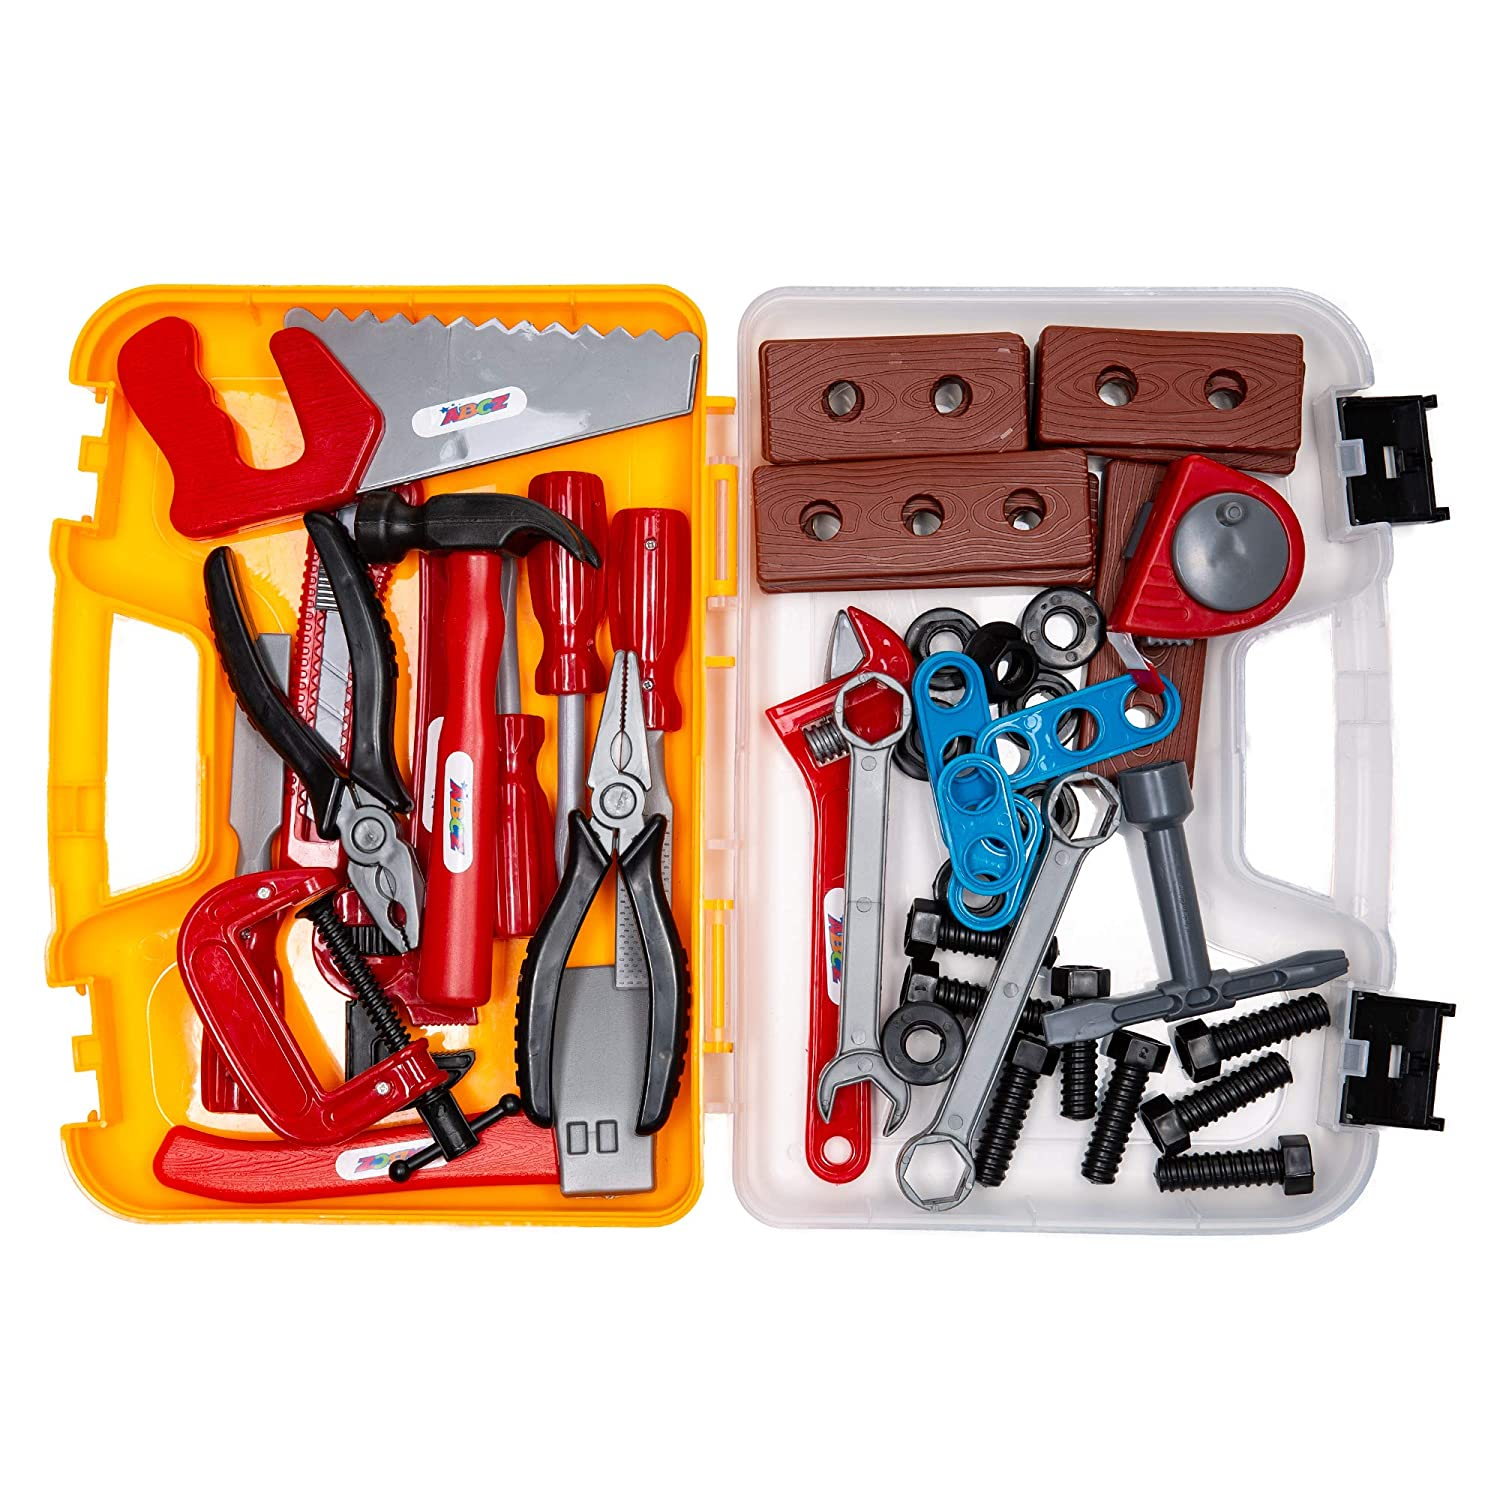 ABCZ 49 Piece Educational Kids Tool Set- Construction, Workshop, Mechanic and Power Tool Toy Kit for Kids Pretend Play with Realistic Tools and Easy-to-Carry Storage Tool Box